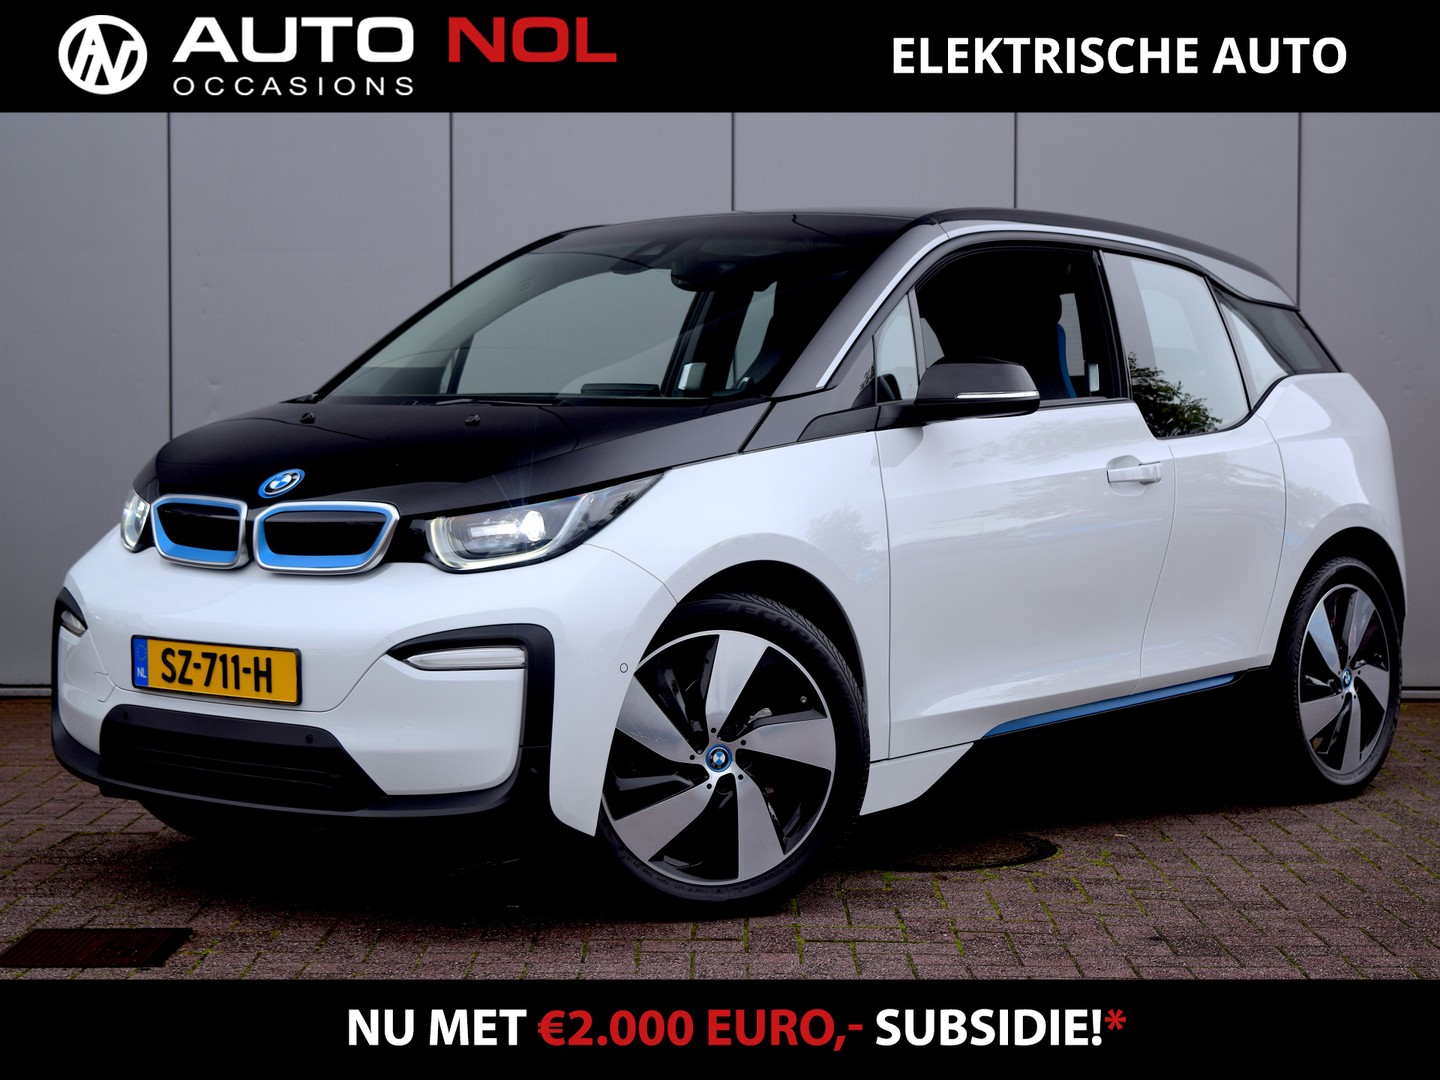 Bmw I3 Basis iperformance 94ah 33 kwh €2000,- subsidie incl. btw file assistent camera pdc adaptieve cruise clima navi stoelverwarming lm19""